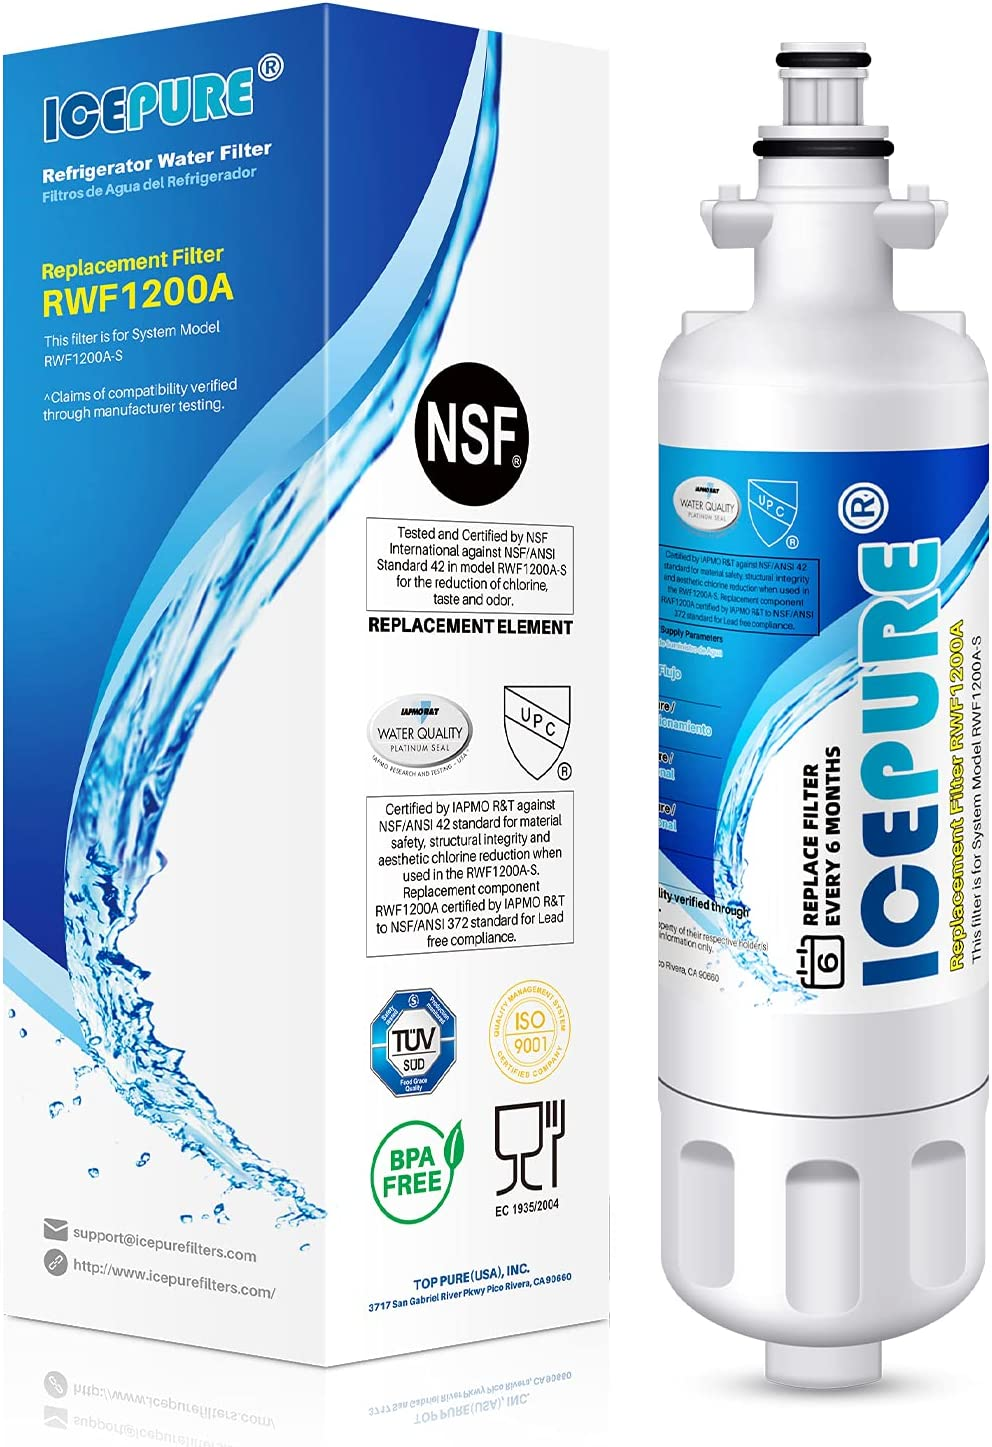 ICEPURE Refrigerator Water Filter OFFicial mail order with Compatible 9690 Japan Maker New Kenmore